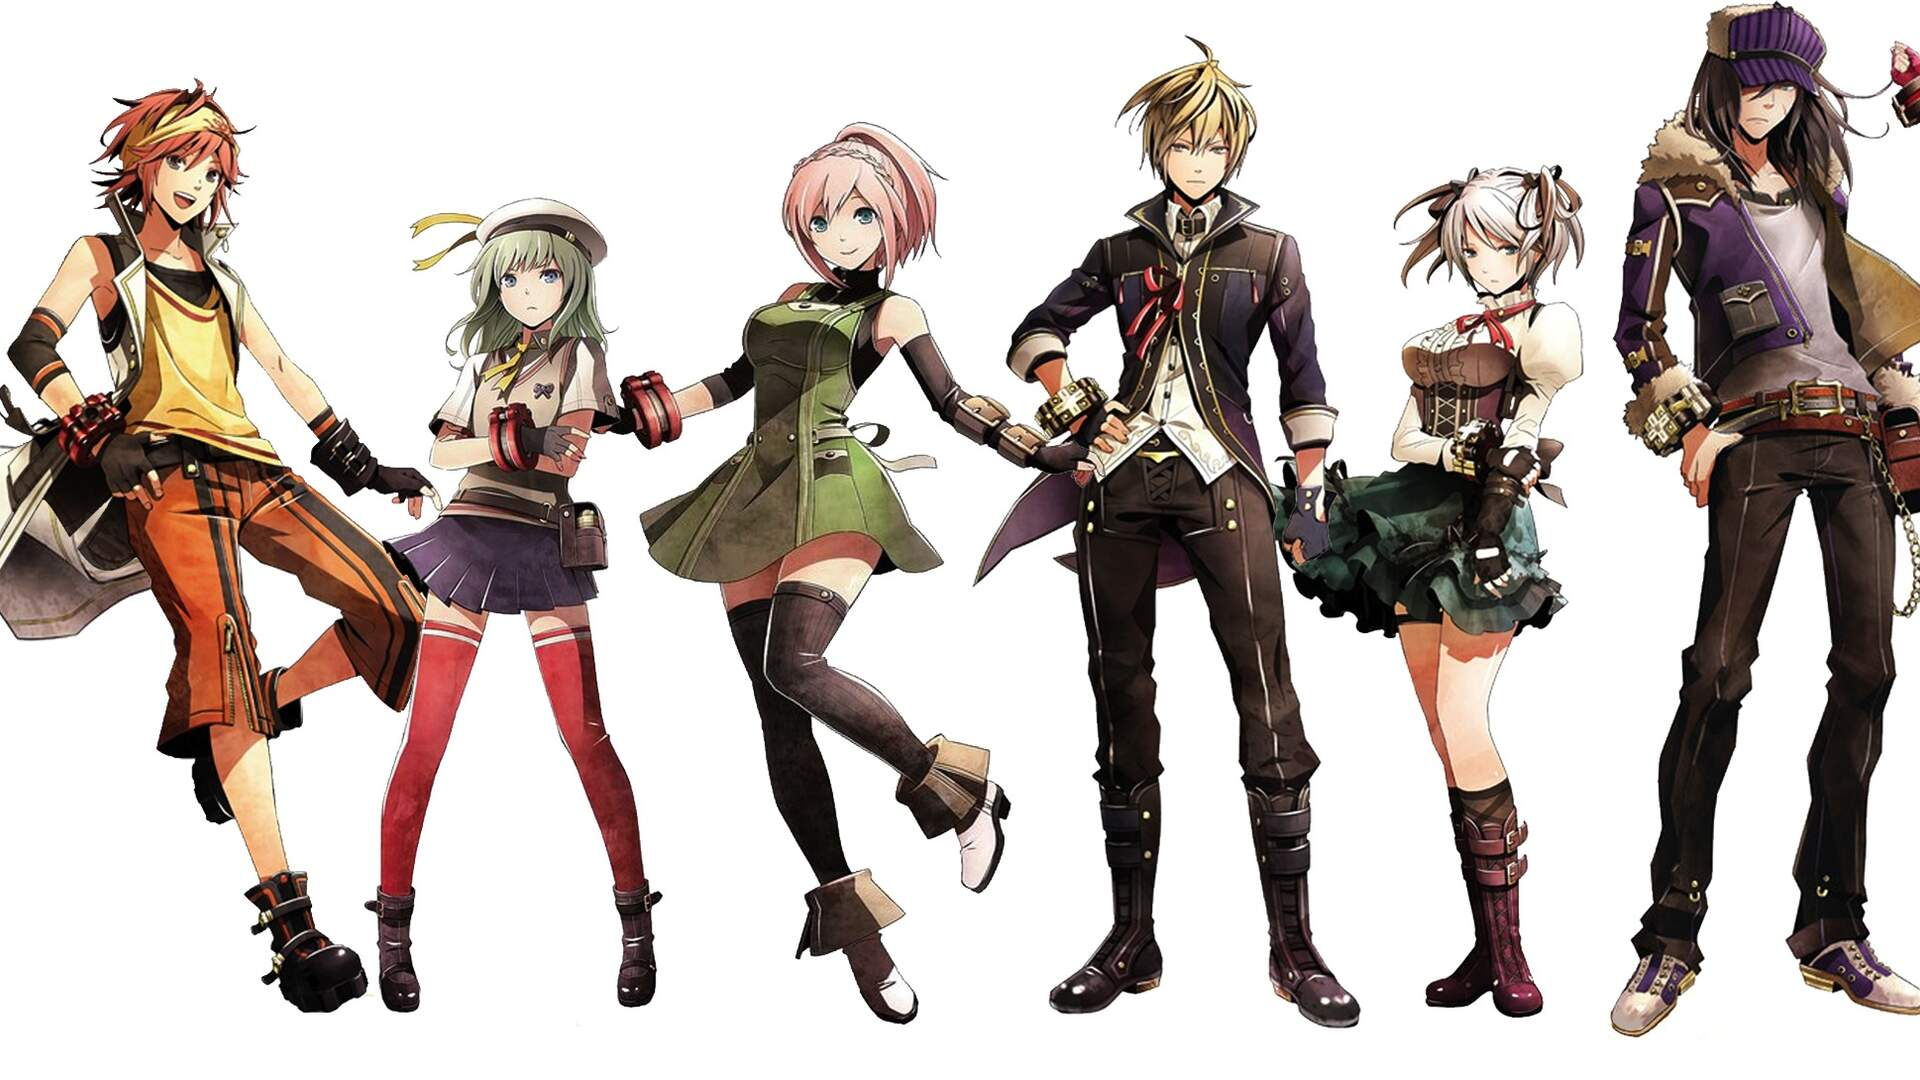 TGS: God Eater 2 is Like One of My Japanese Animes (Also, Like Monster Hunter)